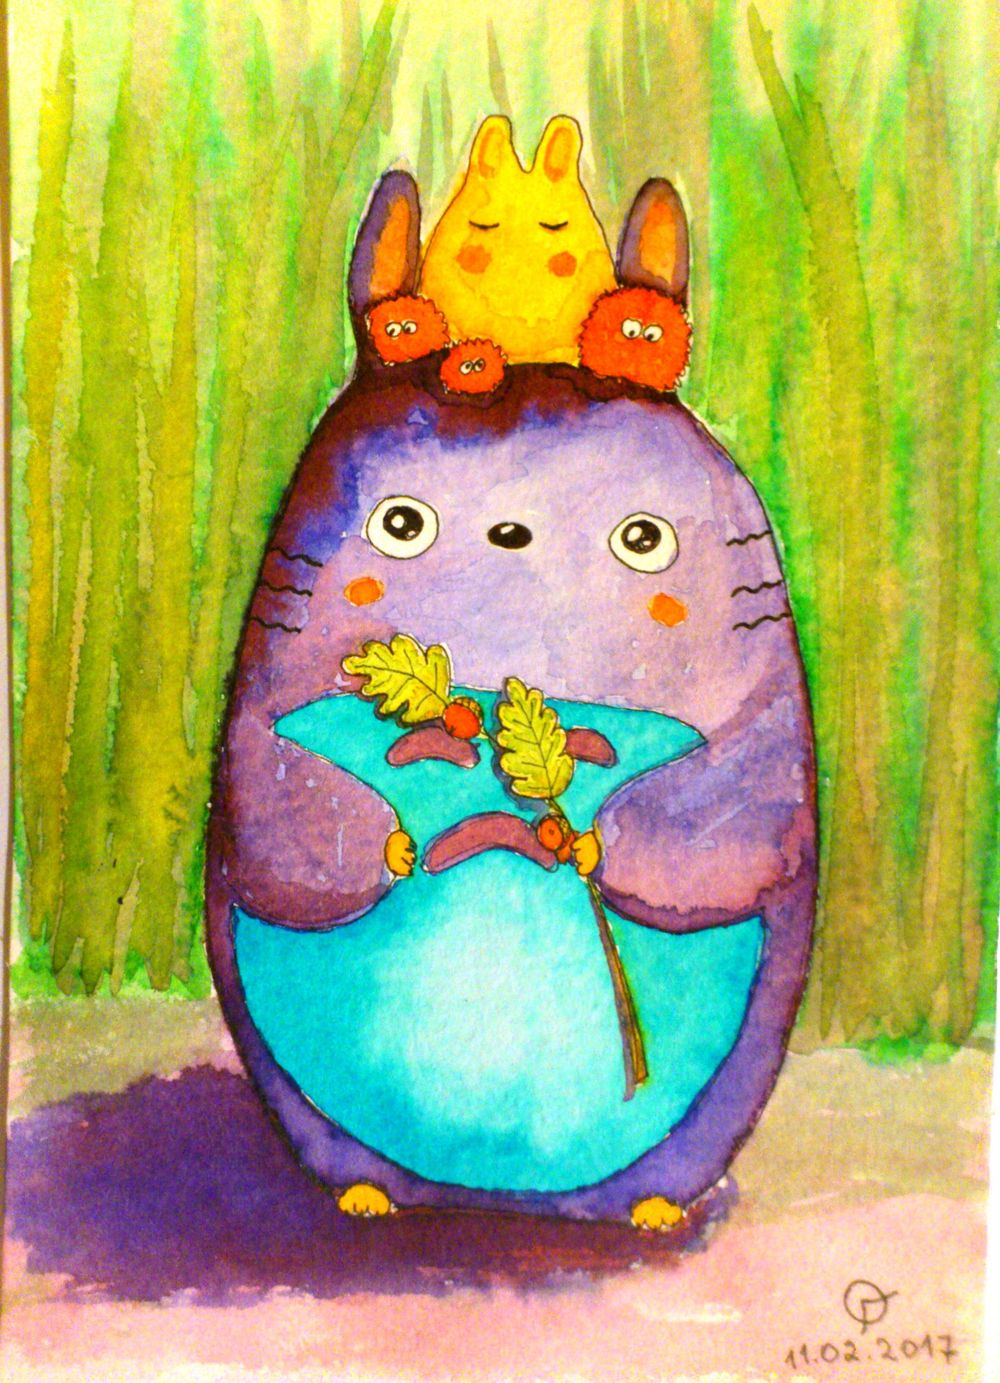 Totoro - image 1 - student project